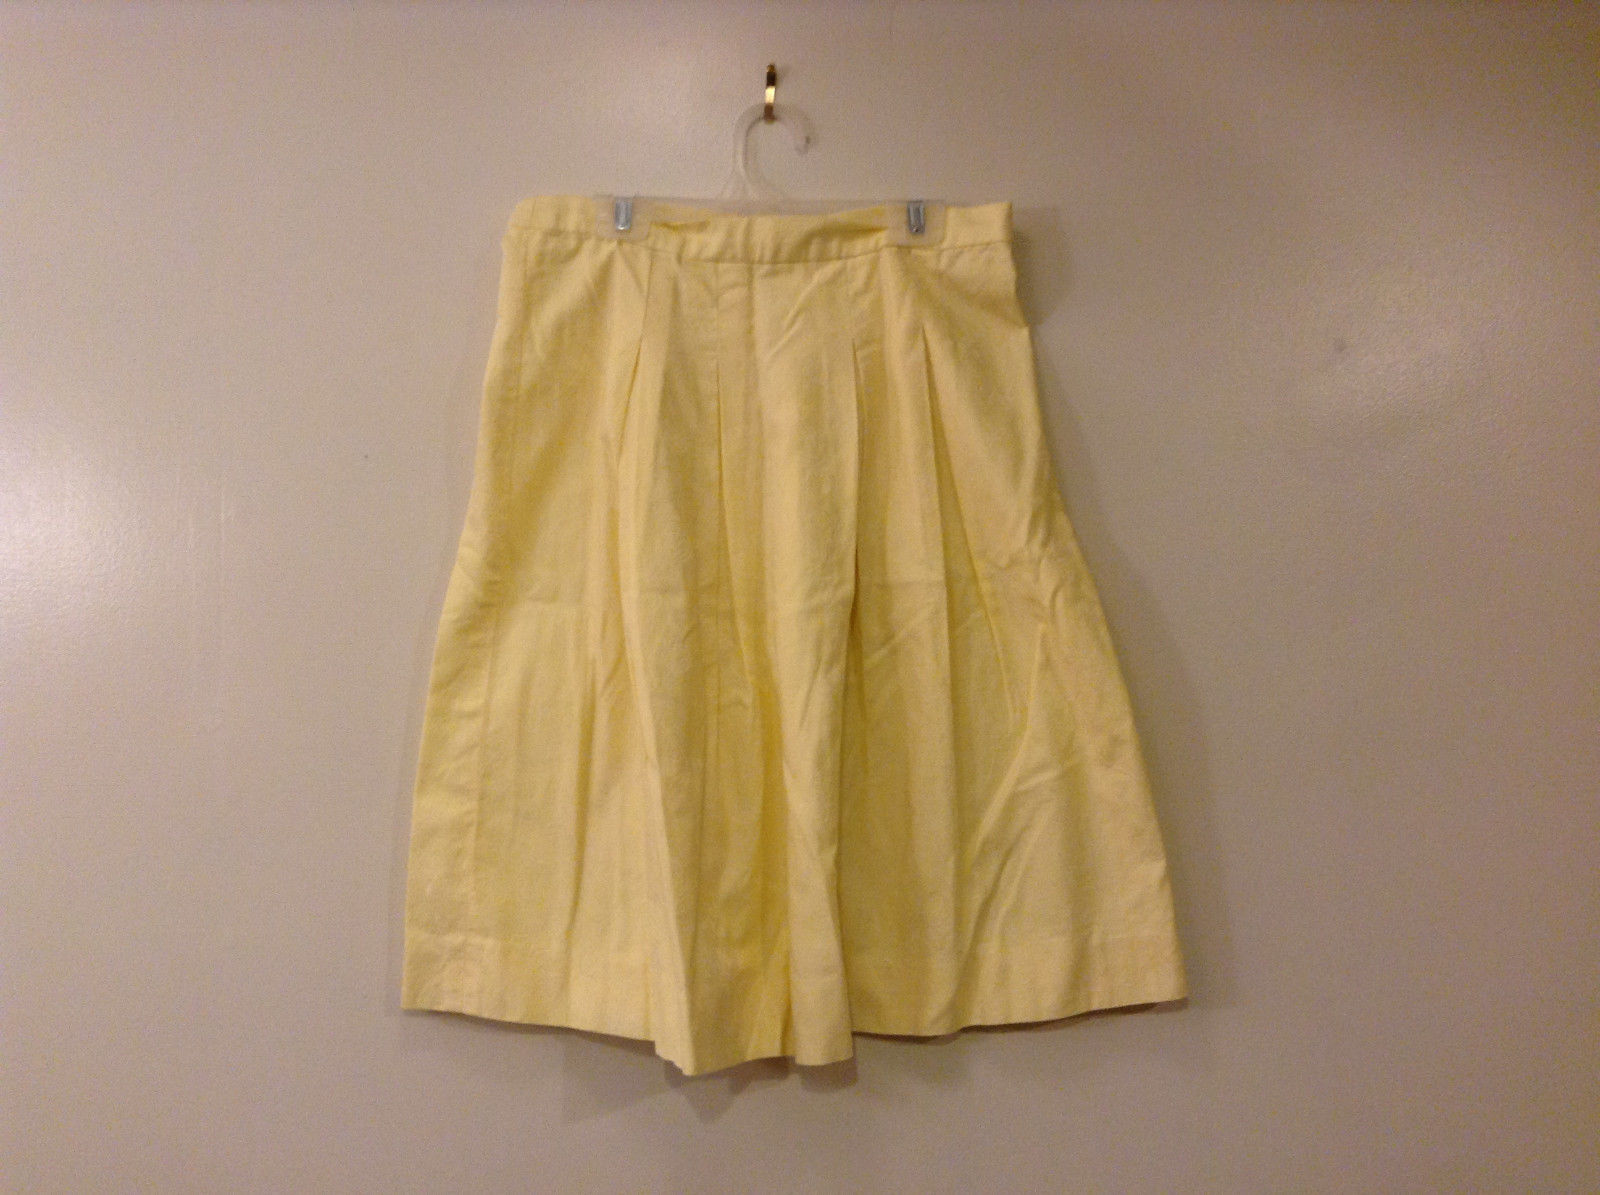 Handmade Women's Size M Skirt Pastel Butter Yellow Pleated A-Line Knee Length